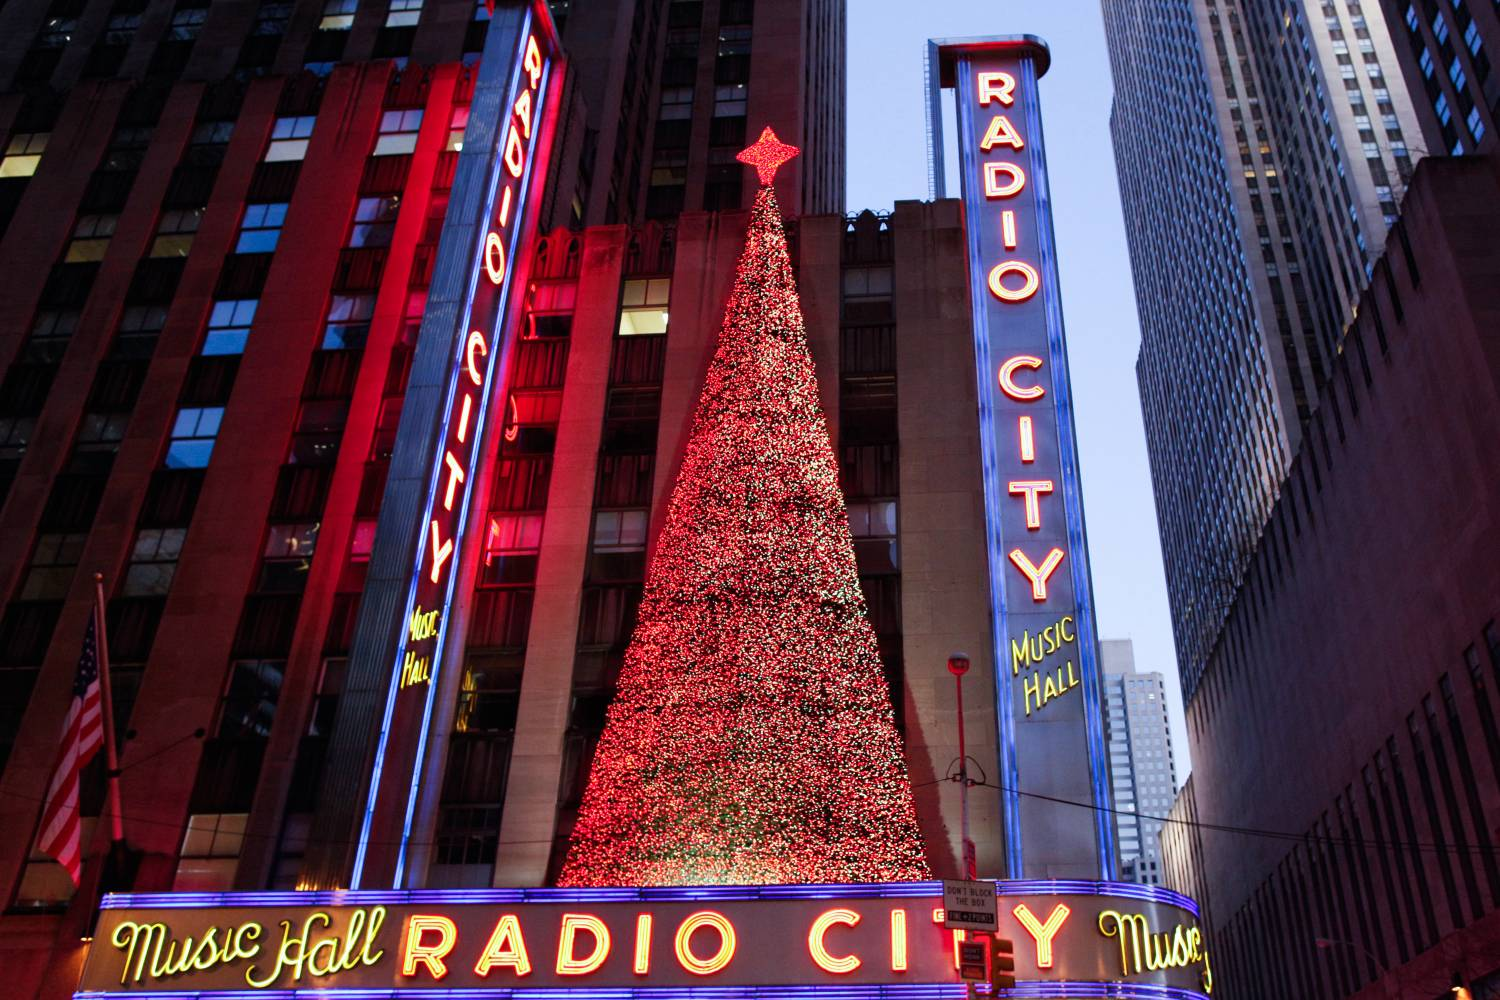 Exterior of Radio City Music Hall during the Christmas season with Christmas tree at dusk